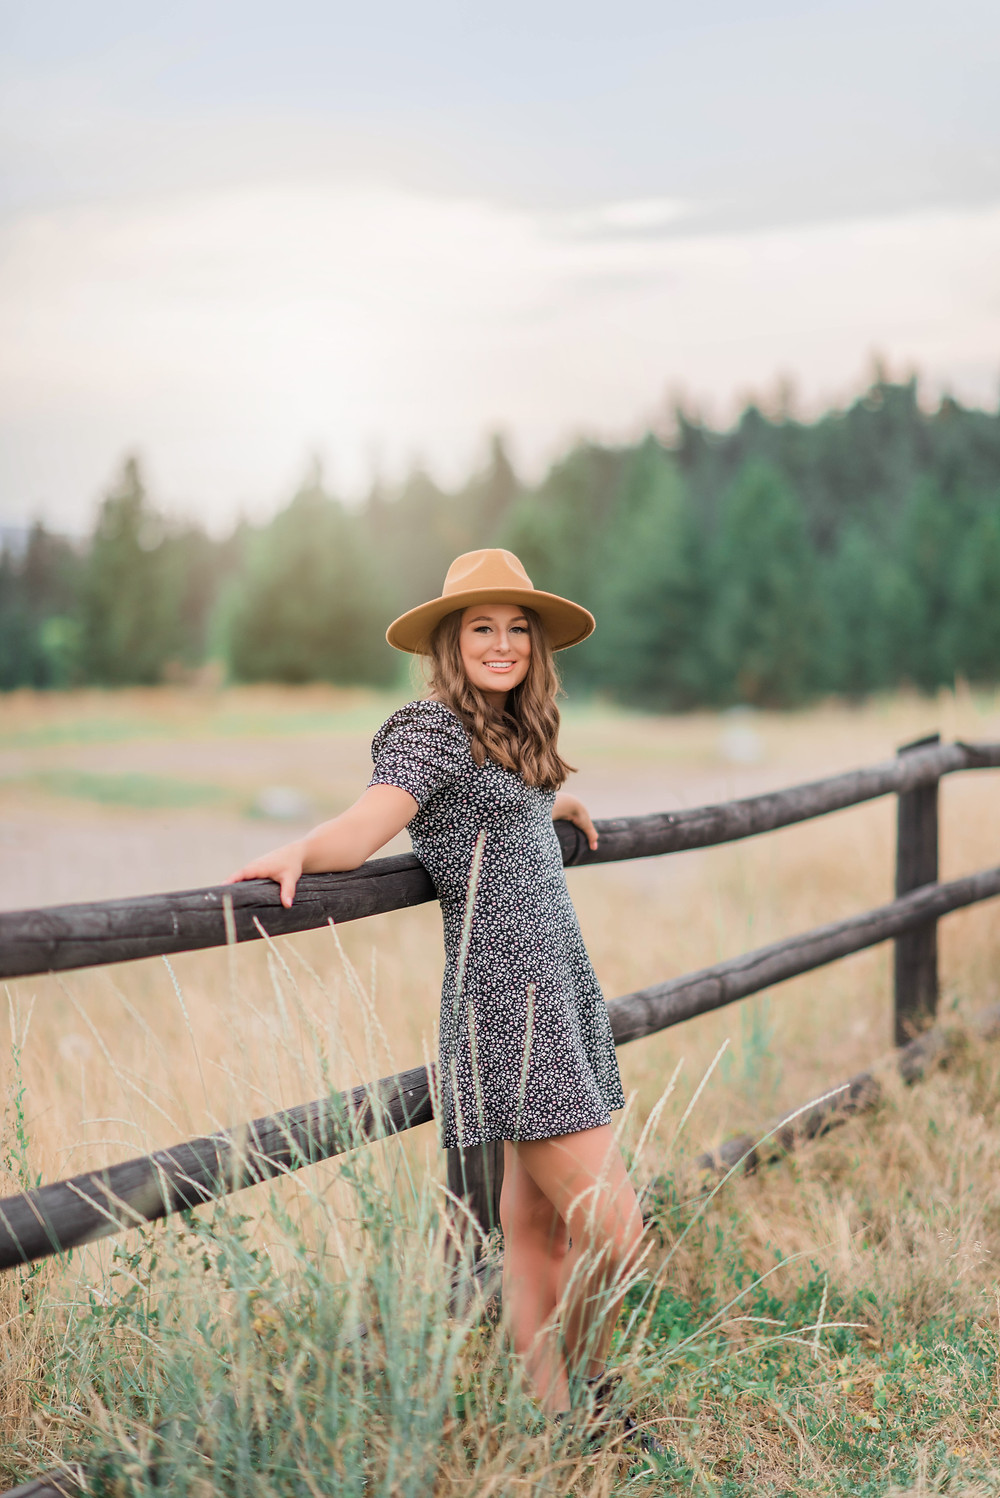 Aubrey Tuss posing for her senior portrait session with Infinite Photography Missoula. Aubrey will be graduating from Anaconda High School with the class of 2021.